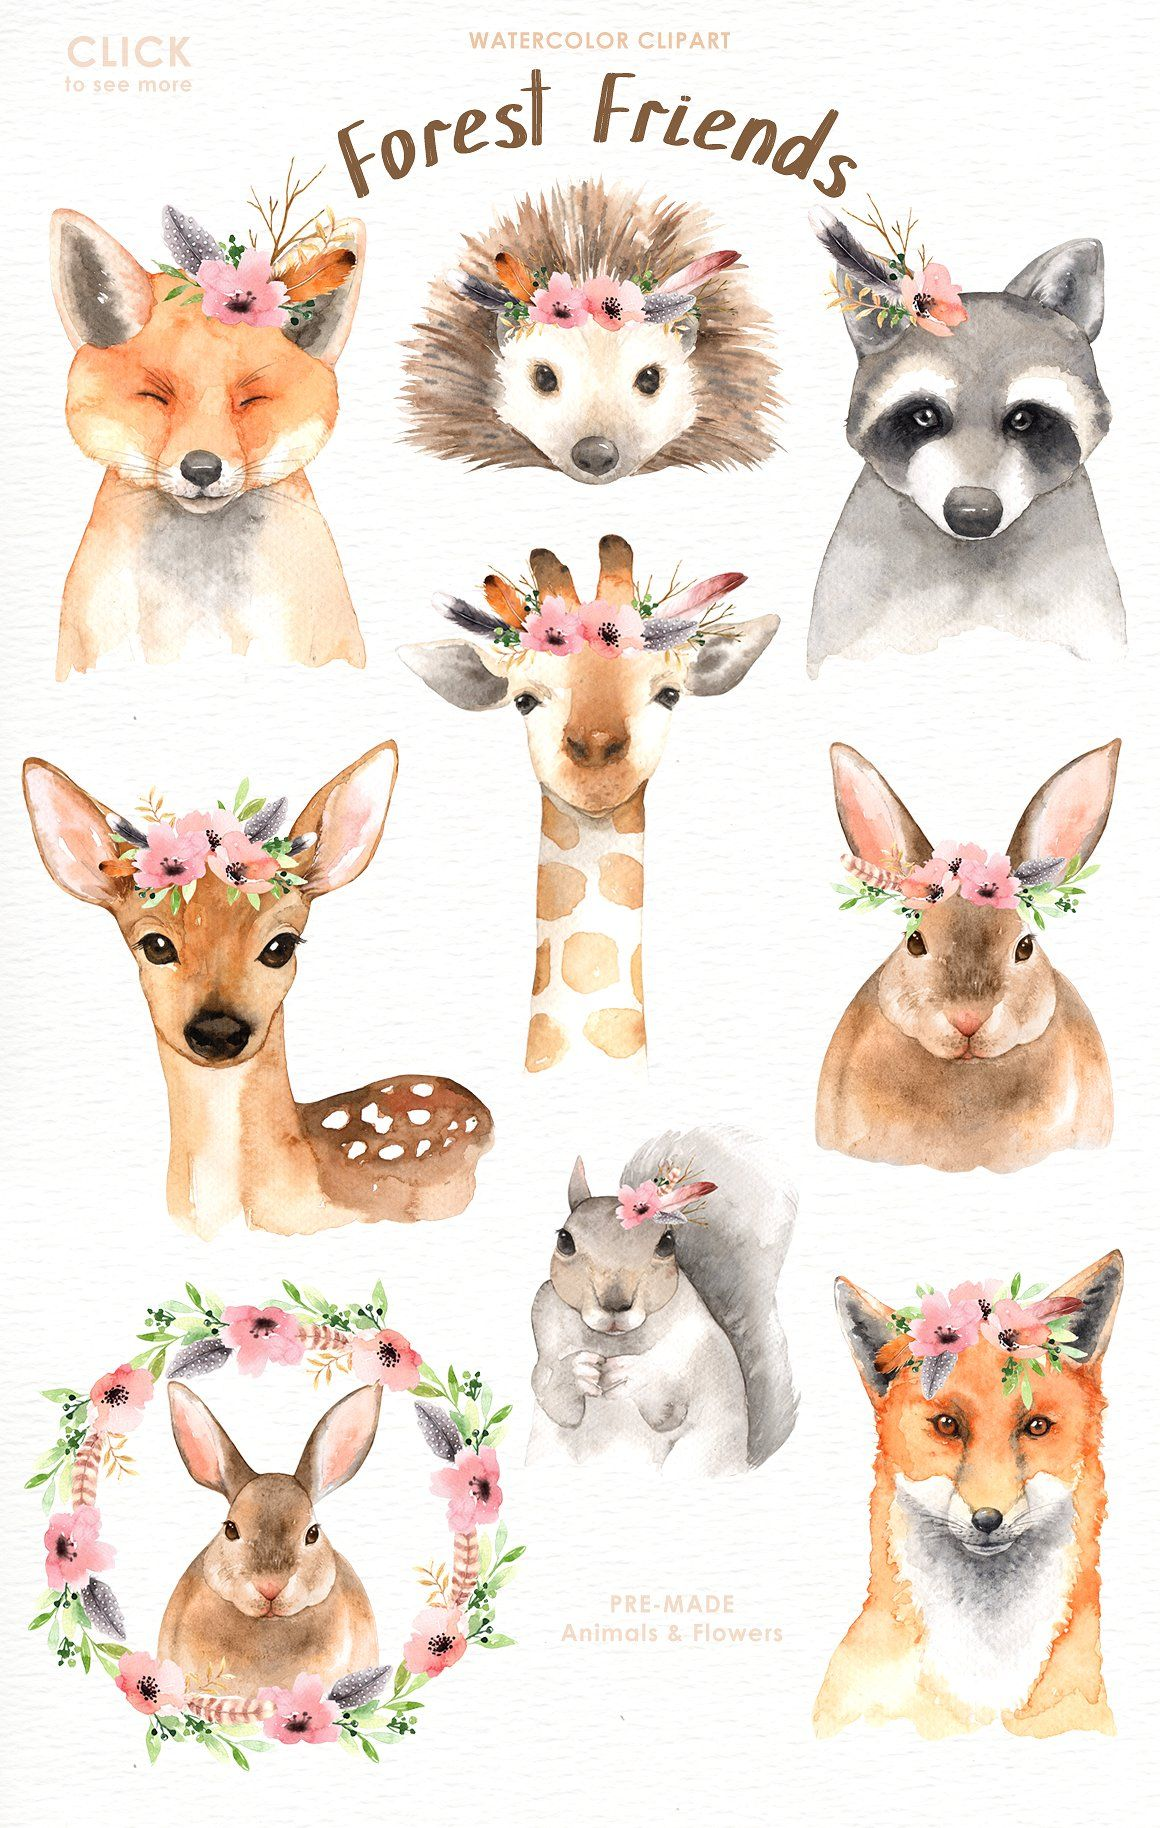 Forest Friends Watercolor Clip Art Animal drawings, Cute